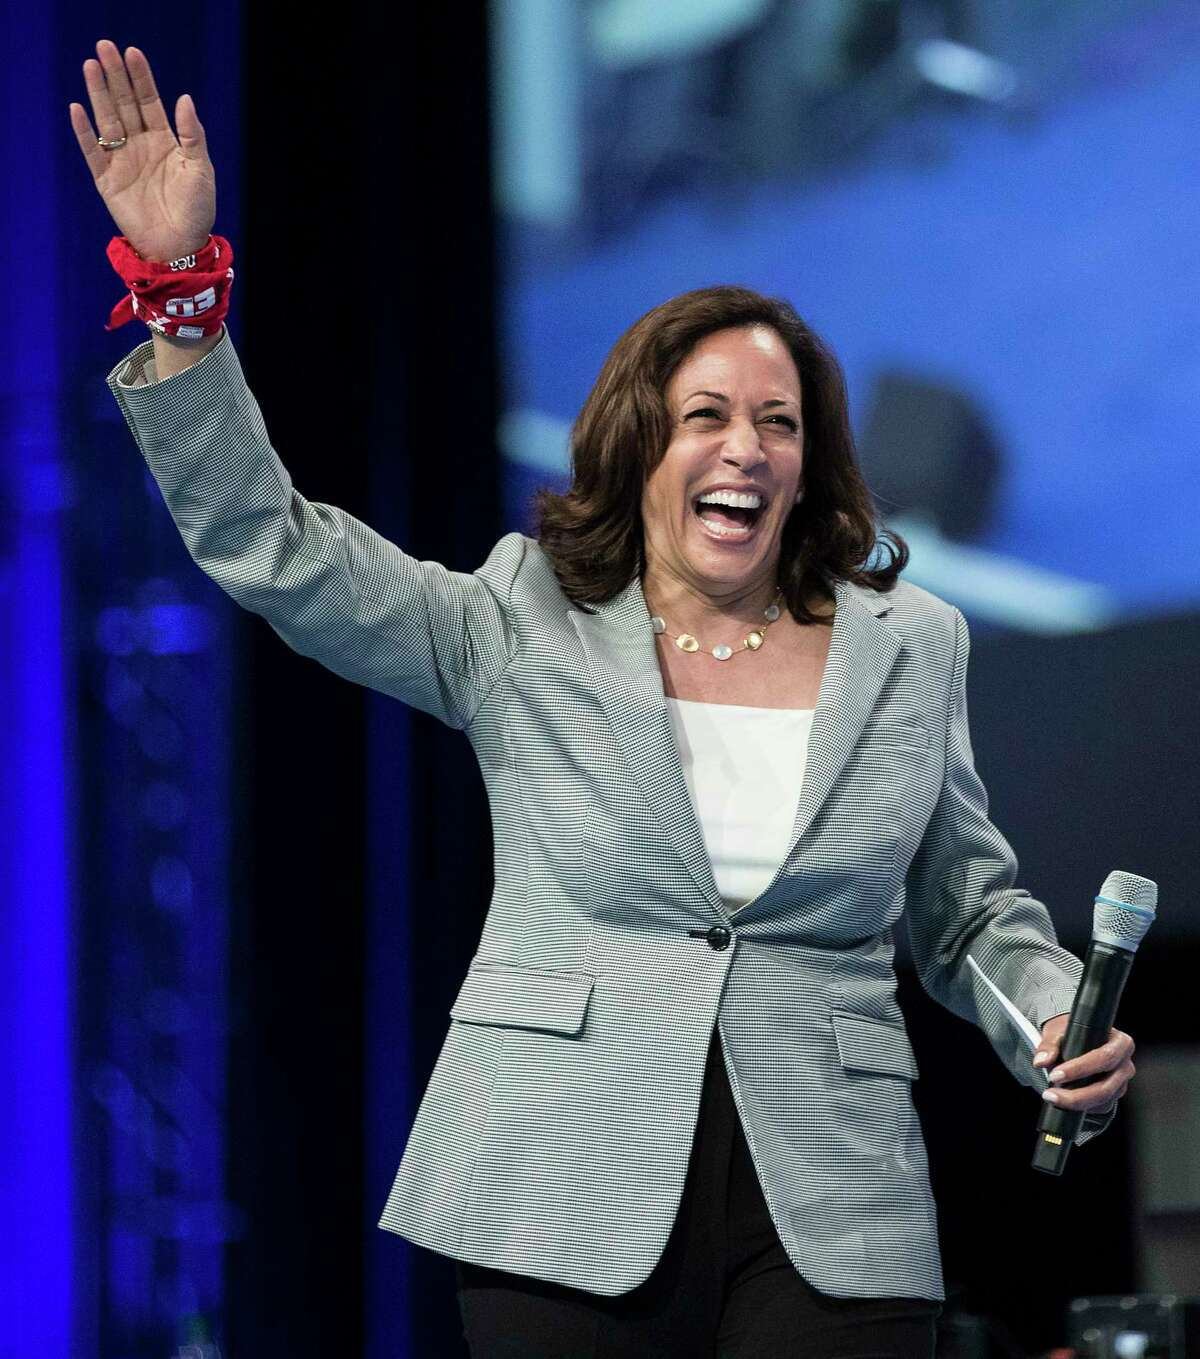 Democratic presidential hopeful, California Sen. Kamala Harris, waves as she arrives on stage to speak during the National Education Association Strong Public Schools Presidential Forum on Friday, July 5, 2019, in Houston.